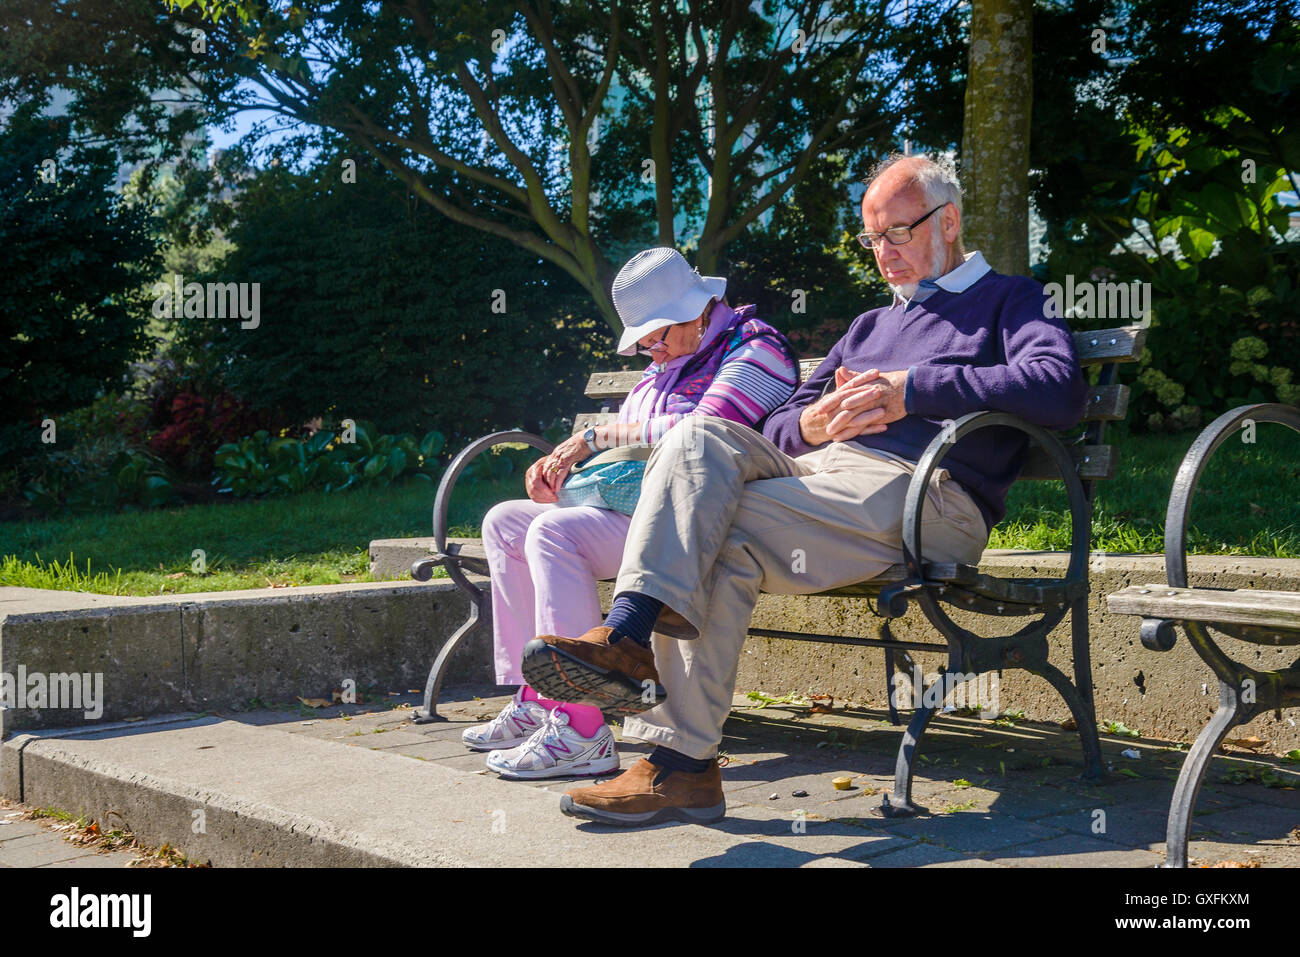 Elderly couple asleep on park bench - Stock Image